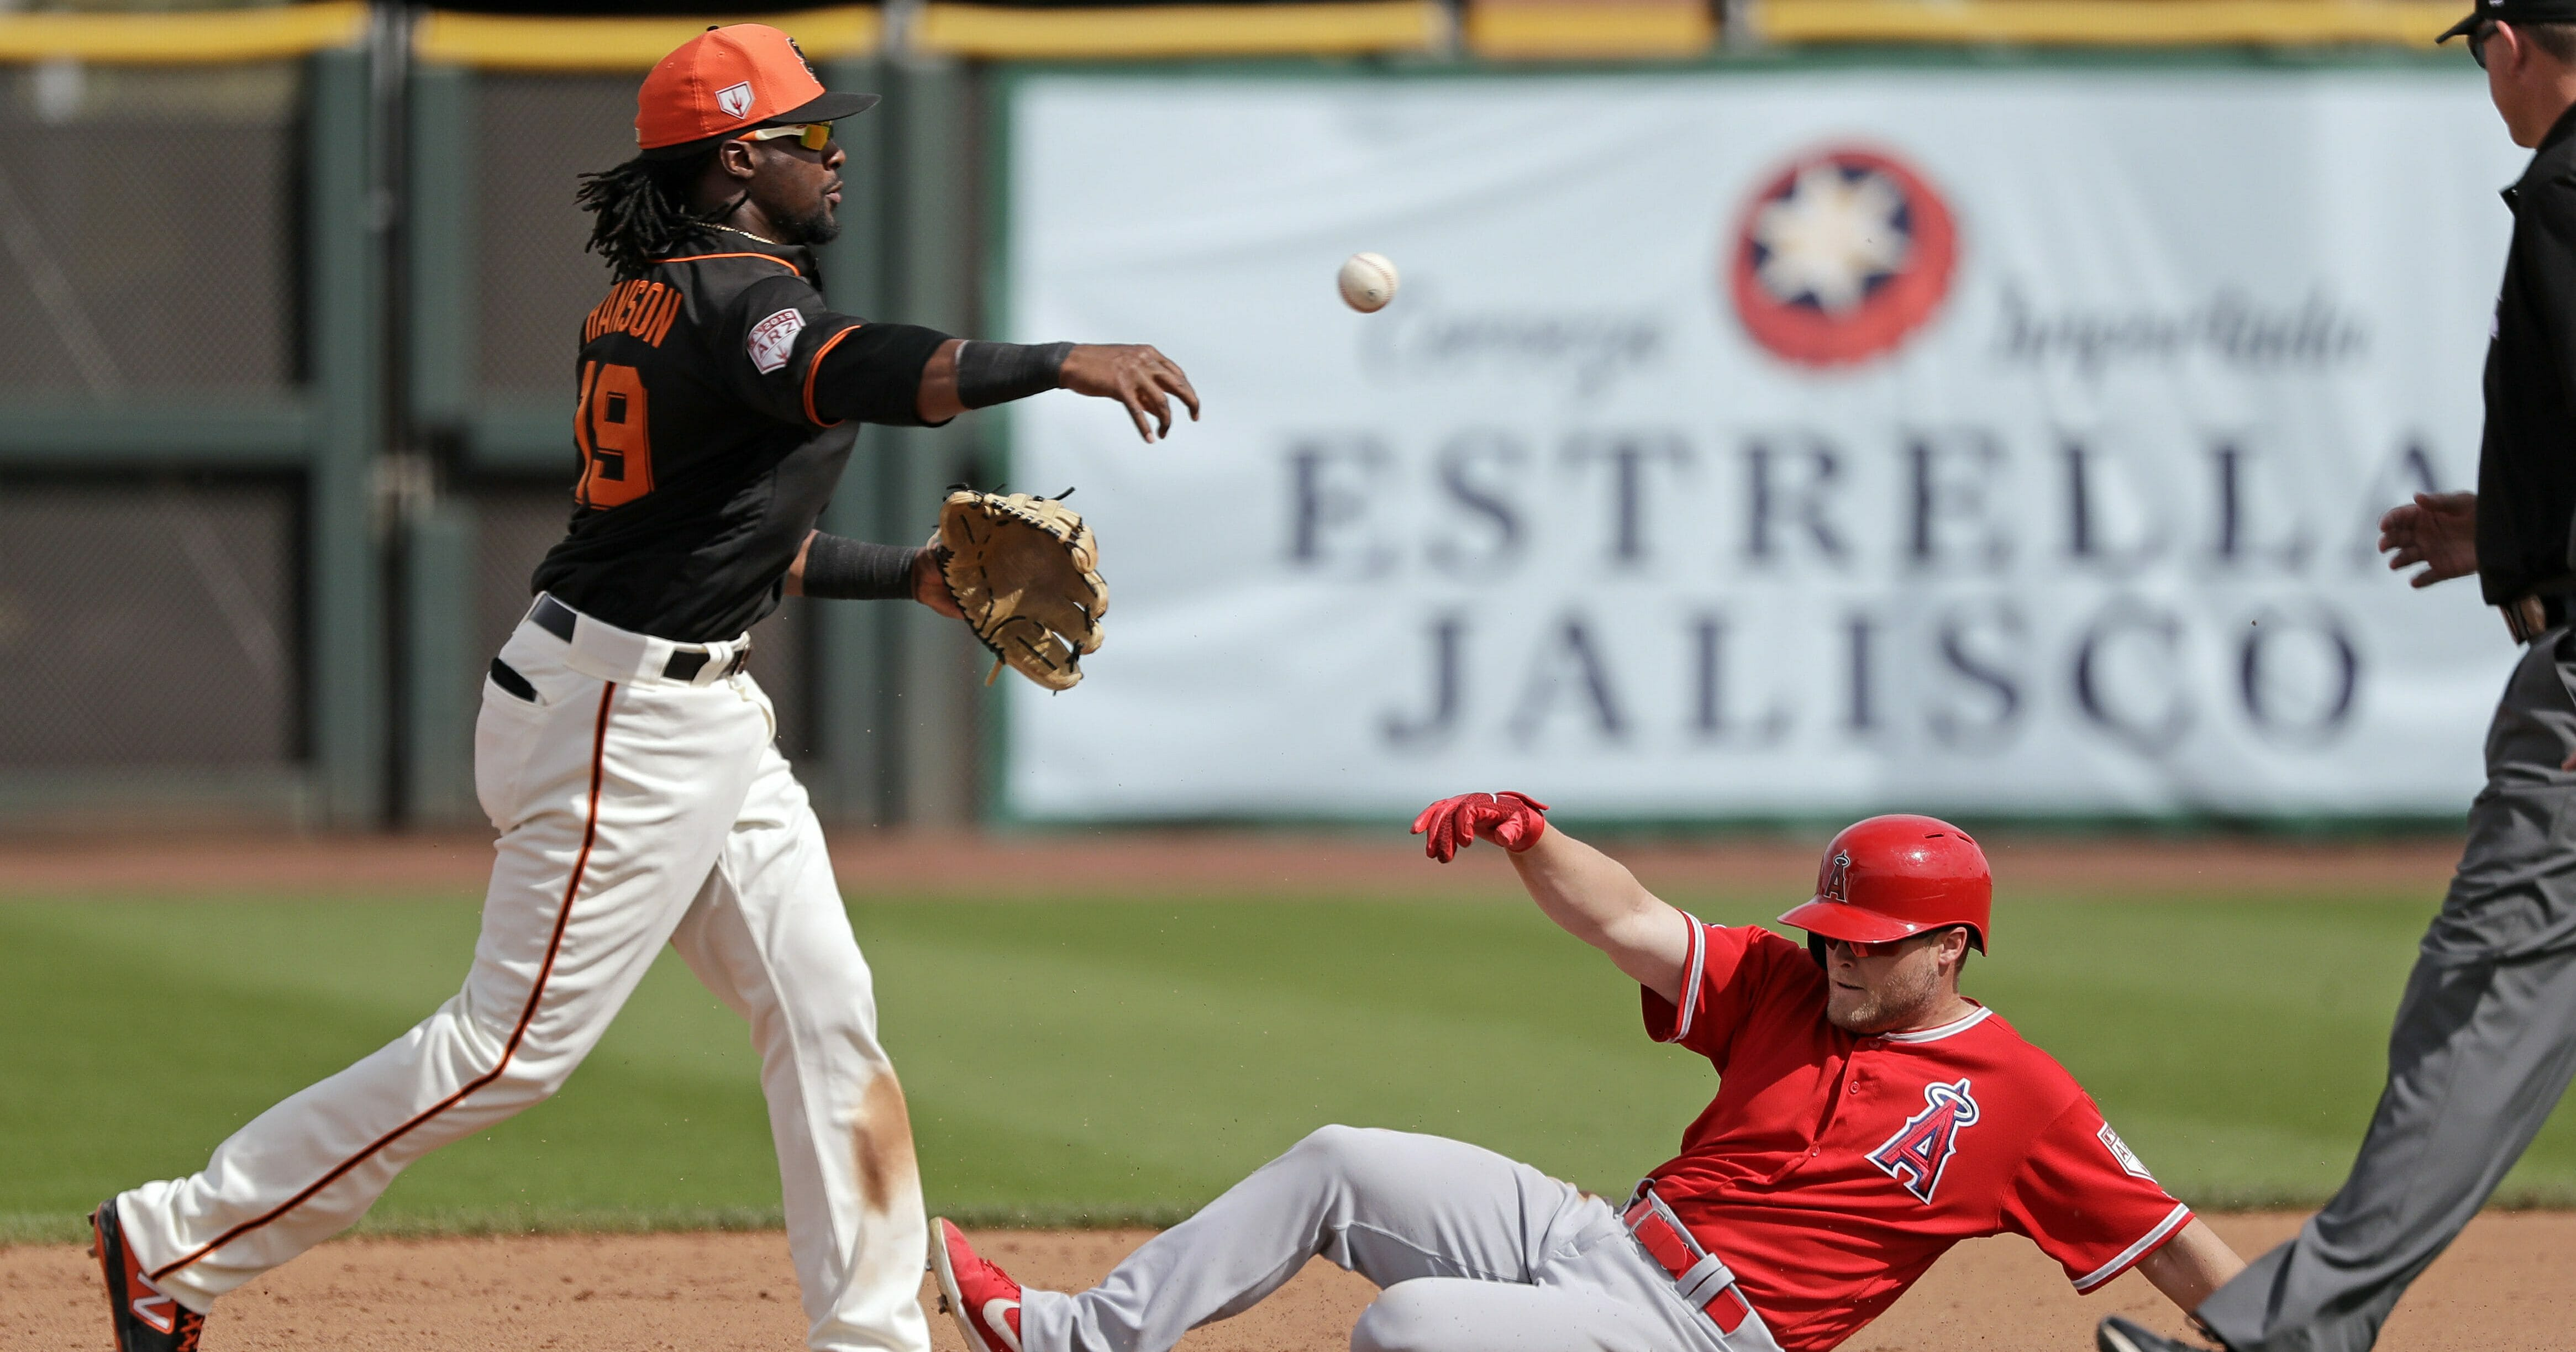 San Francisco Giants shortstop Alen Hanson, left, throws to first base after forcing out Los Angeles Angels' Brennon Lund at second base in the fifth inning of a spring training baseball game Friday, Mar. 15, 2019, in Phoenix.